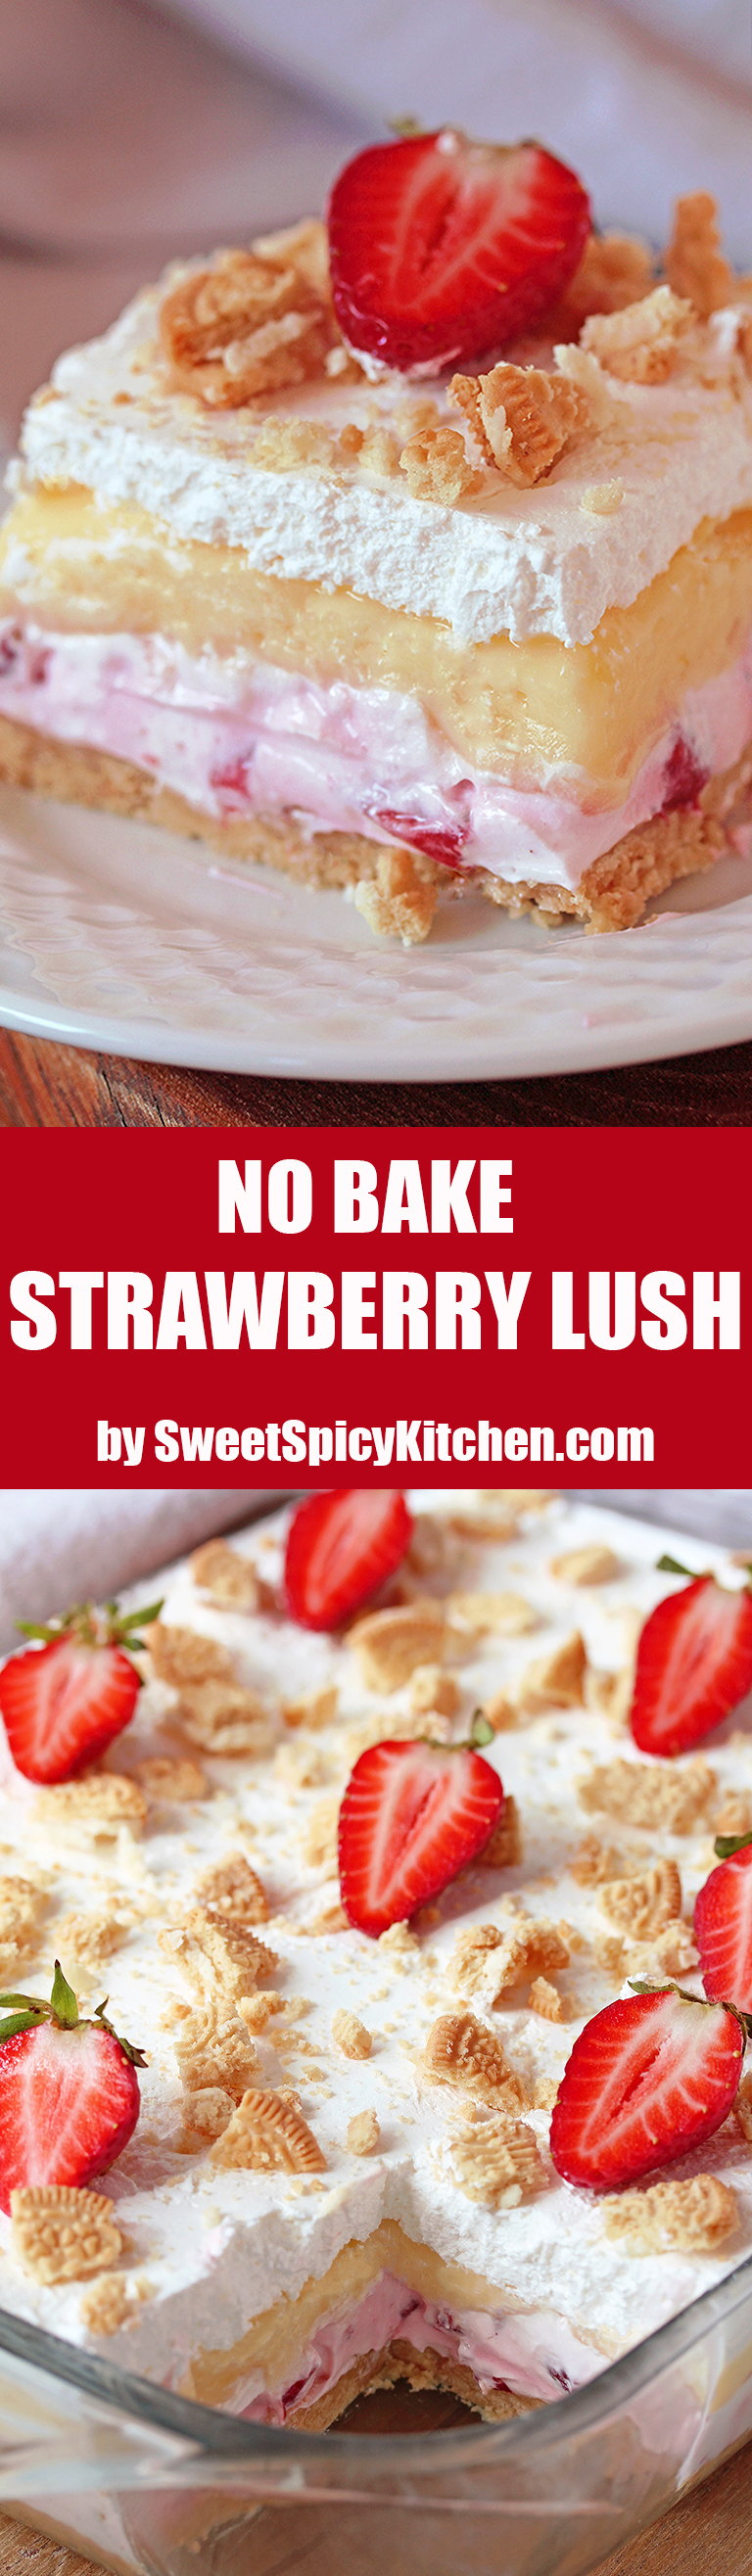 No Bake Strawberry Lush is a layered dessert with golden Oreo crust and creamy layers of strawberry cheesecake and vanilla pudding, topped with whipped cream, crushed golden Oreos and strawberries